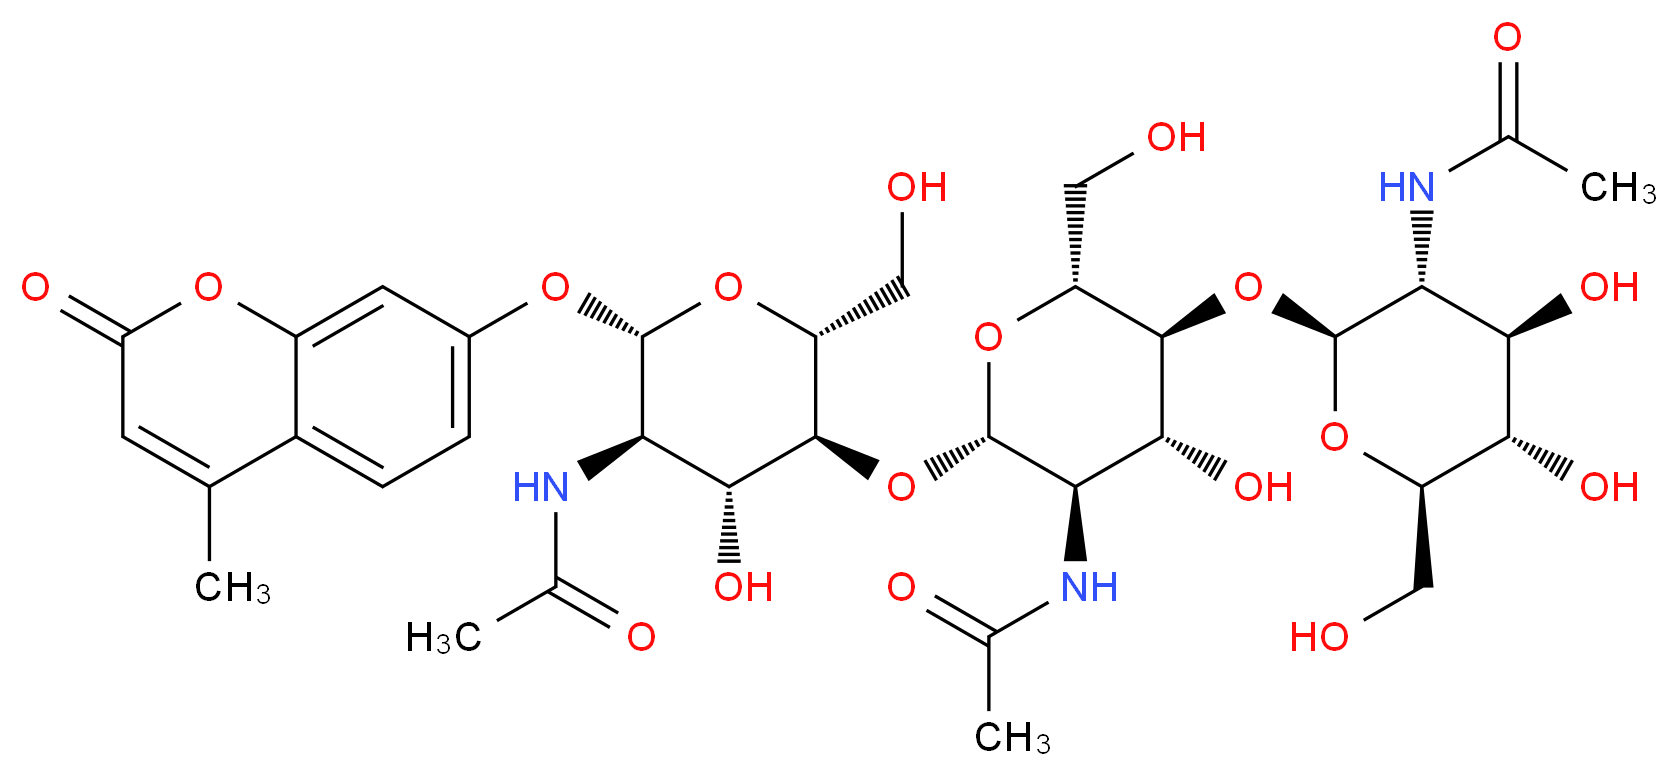 N-[(2S,3R,4R,5S,6R)-5-{[(2S,3R,4R,5S,6R)-3-acetamido-5-{[(2S,3R,4R,5S,6R)-3-acetamido-4,5-dihydroxy-6-(hydroxymethyl)oxan-2-yl]oxy}-4-hydroxy-6-(hydroxymethyl)oxan-2-yl]oxy}-4-hydroxy-6-(hydroxymethyl)-2-[(4-methyl-2-oxo-2H-chromen-7-yl)oxy]oxan-3-yl]acetamide_分子结构_CAS_53643-13-3